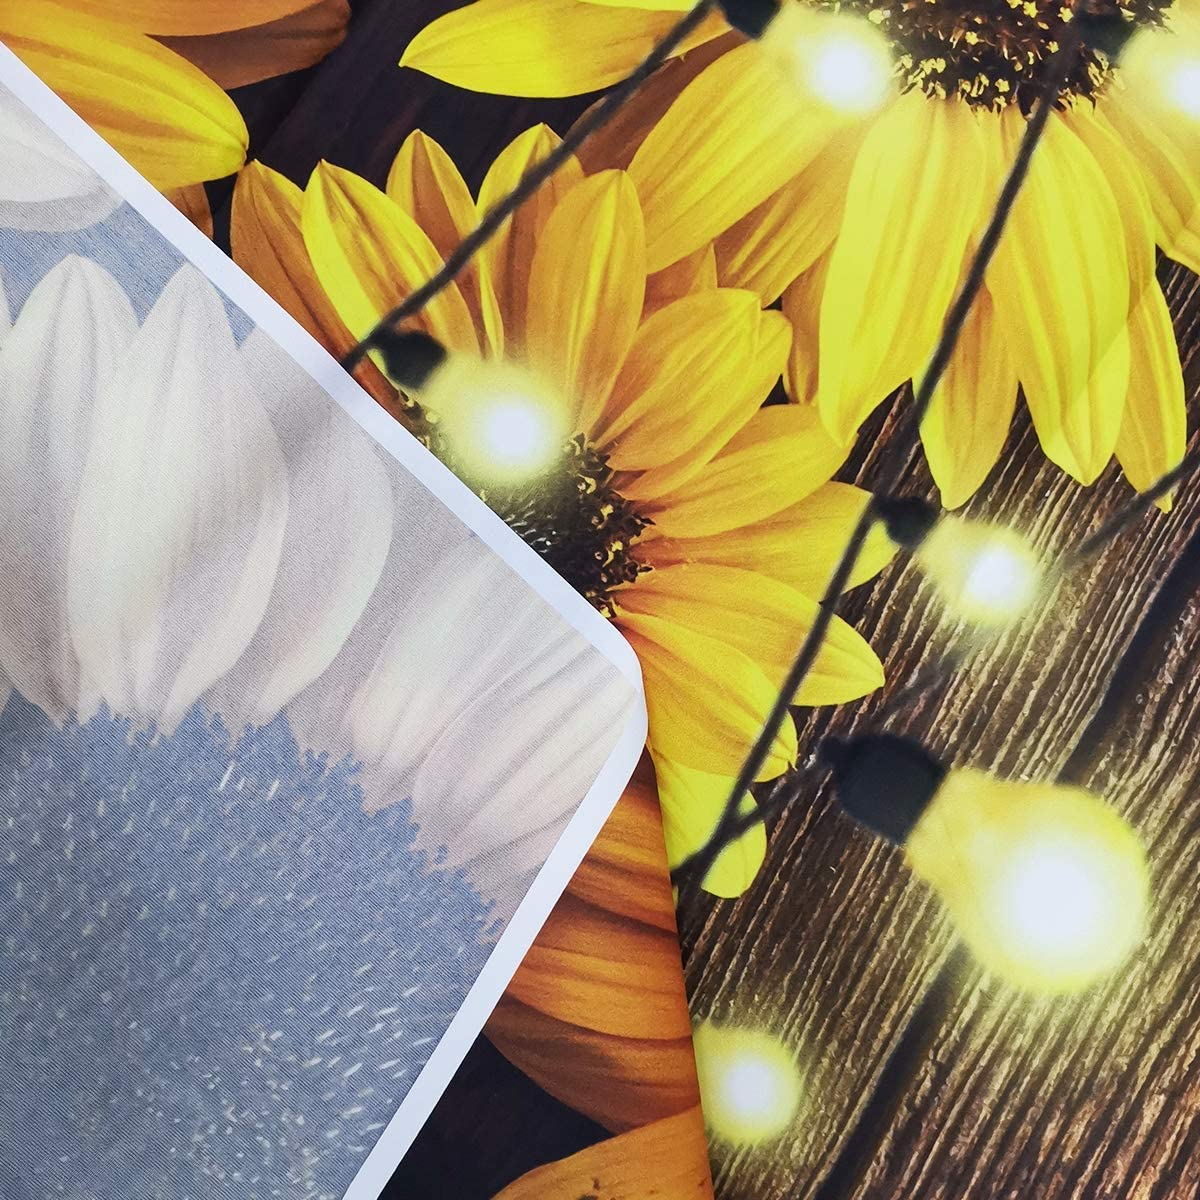 Yellow Flower 8x10 FT Photo Backdrops,Hand Drawn Style Sunflowers on Twigs Petals Growth Botany Summertime Background for Baby Shower Birthday Wedding Bridal Shower Party Decoration Photo Studio